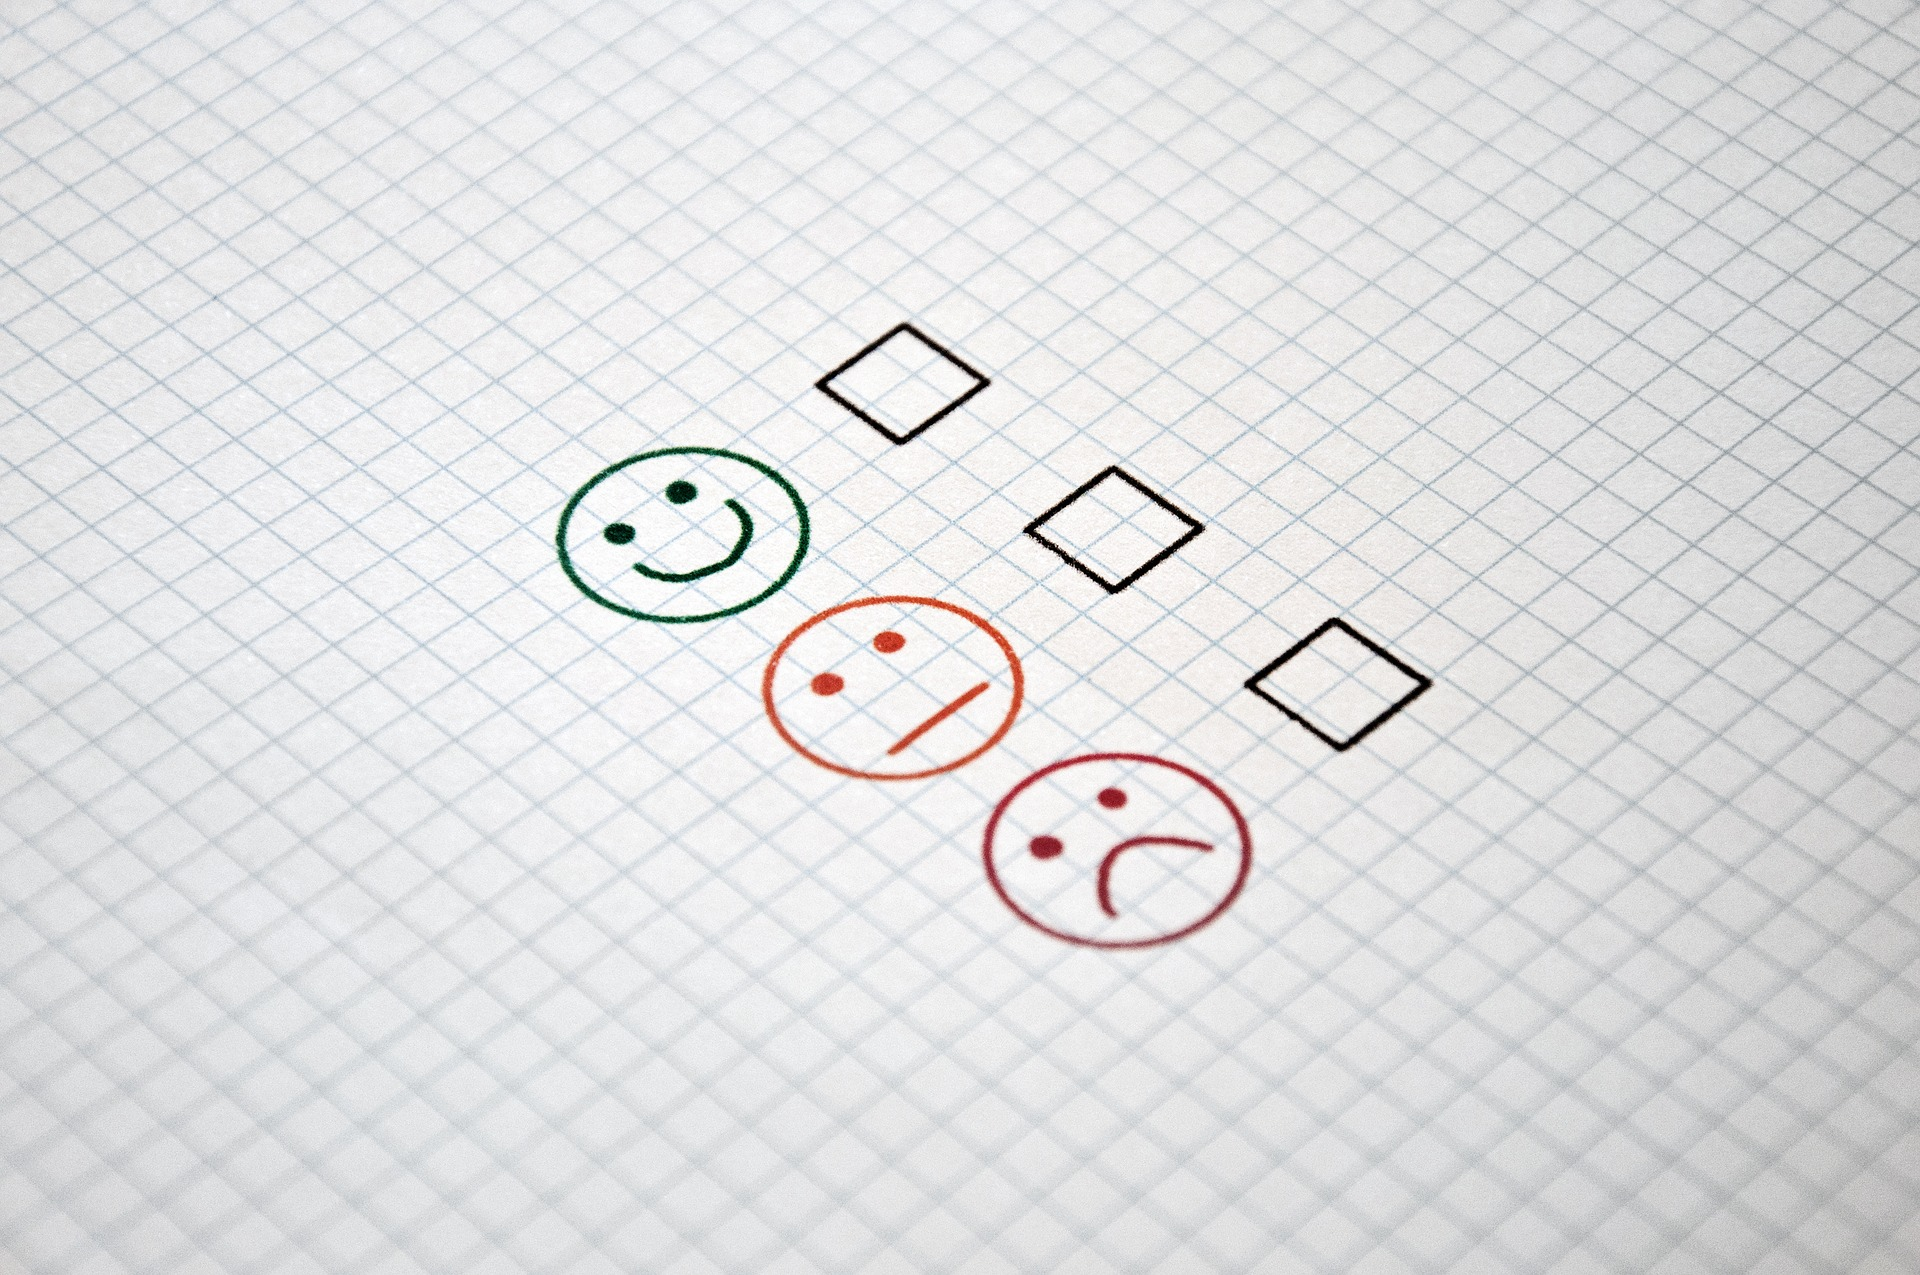 image of a satisfaction survey